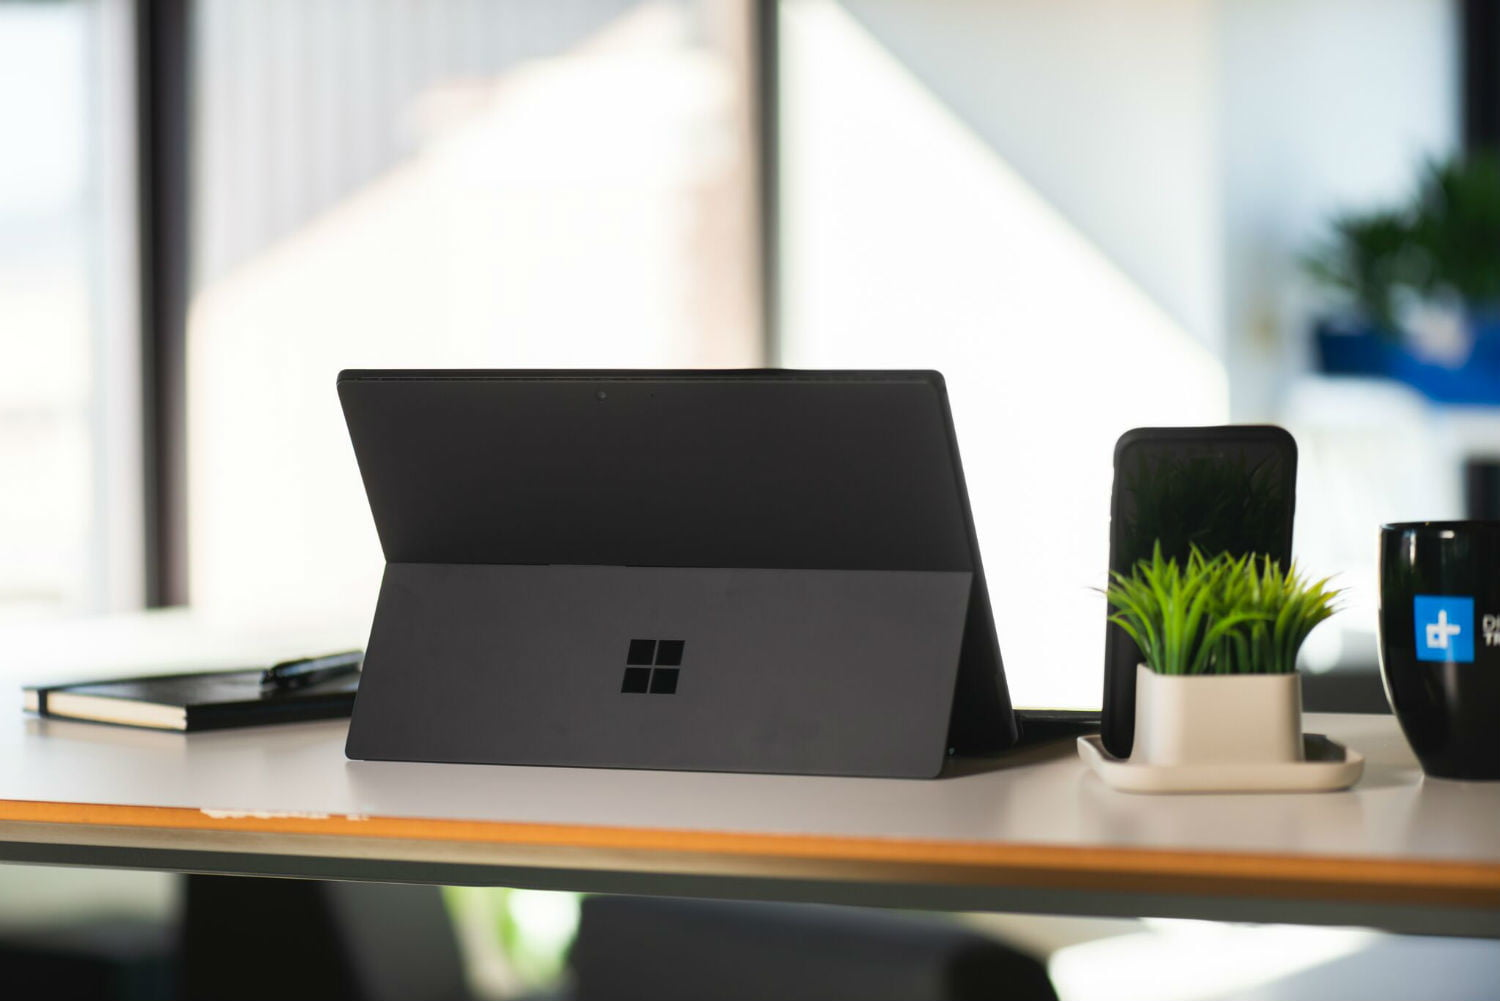 Surface Pro 7: Rumors, News, Price, Release Date, and More | Digital